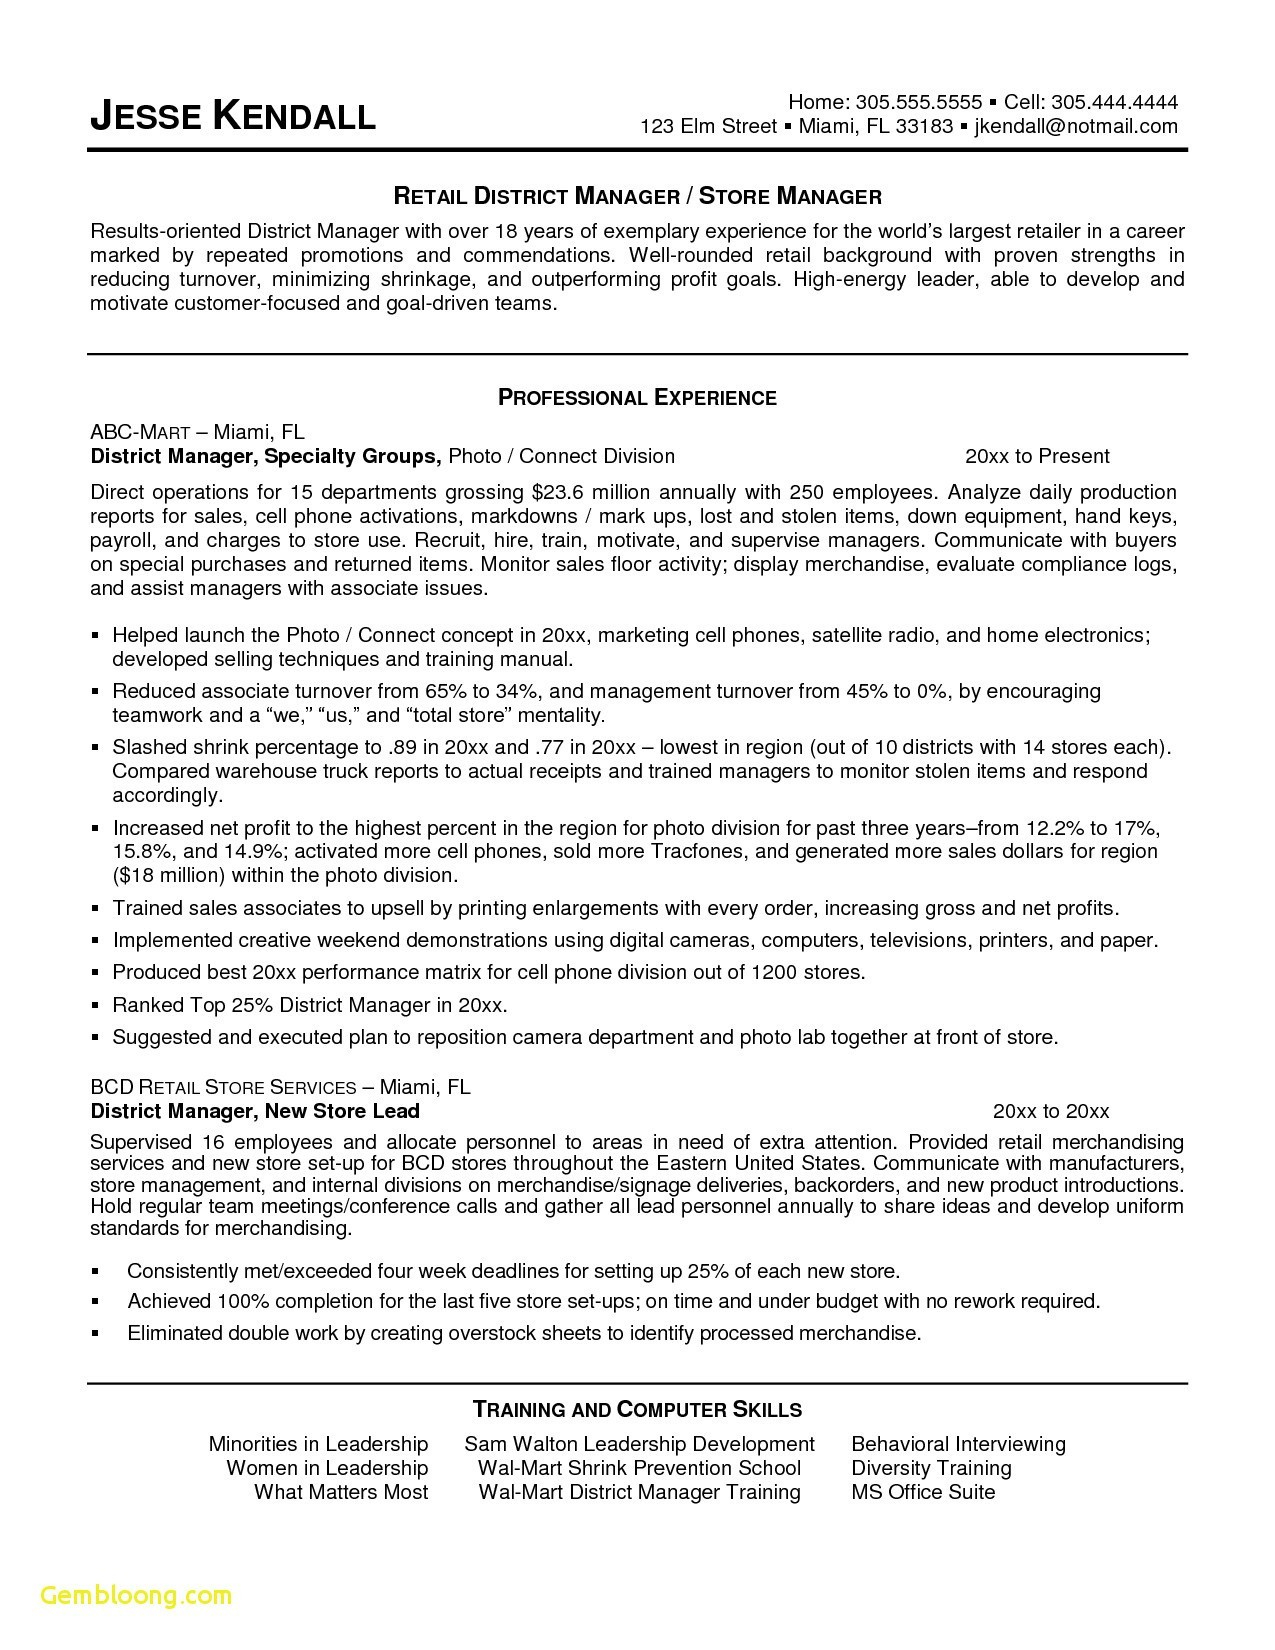 Resume Template Restaurant Manager - Customer Service Manager Resume Unique Fresh Grapher Resume Sample